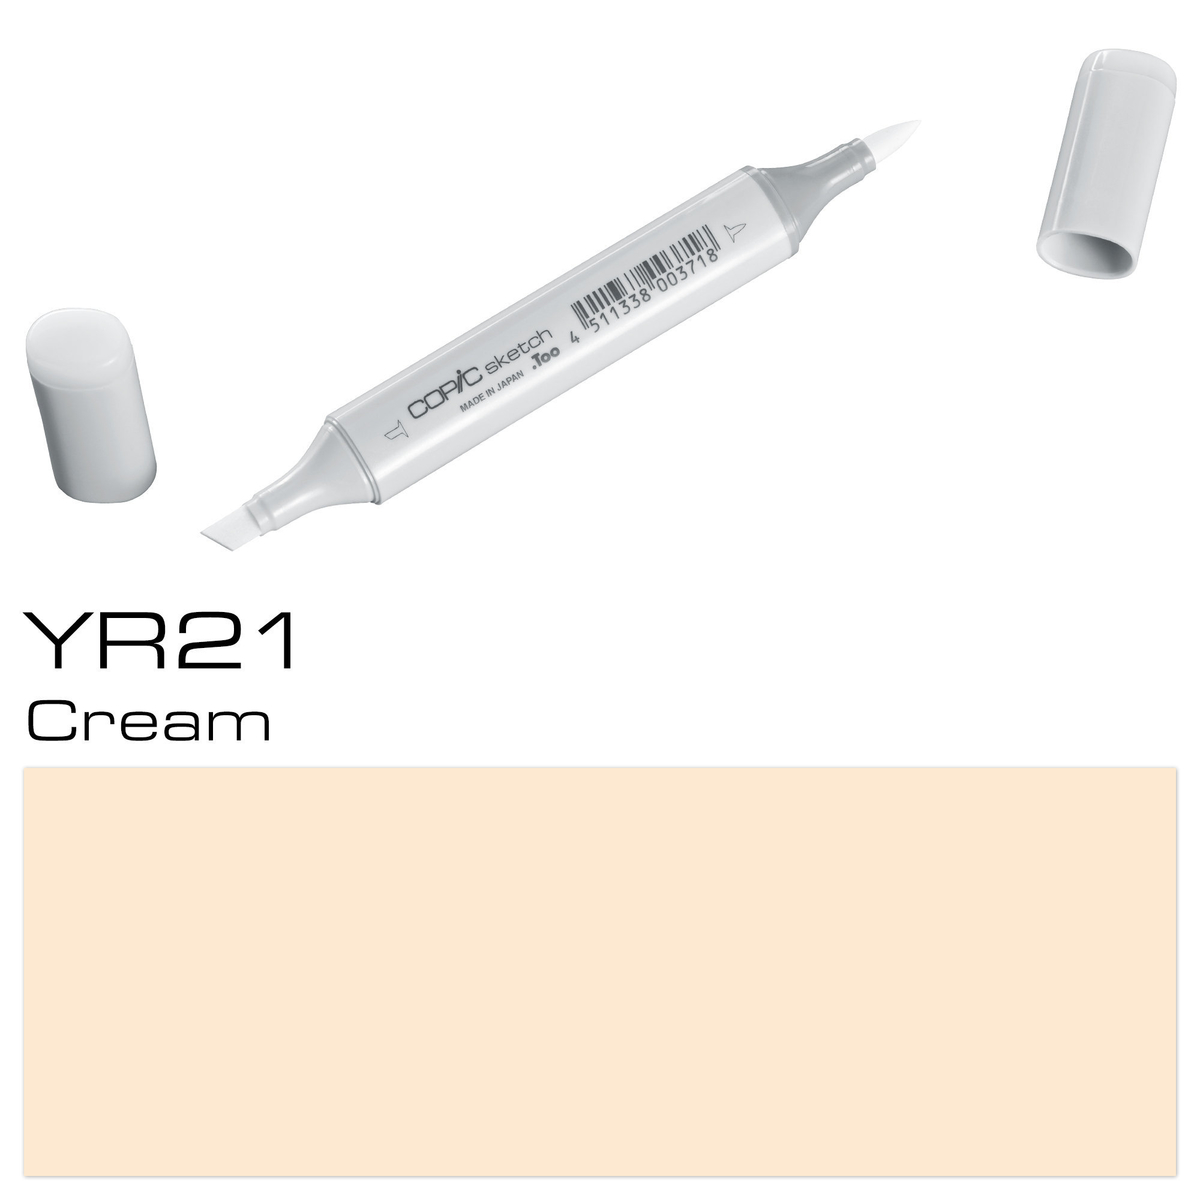 Copic Sketch YR 21 cream